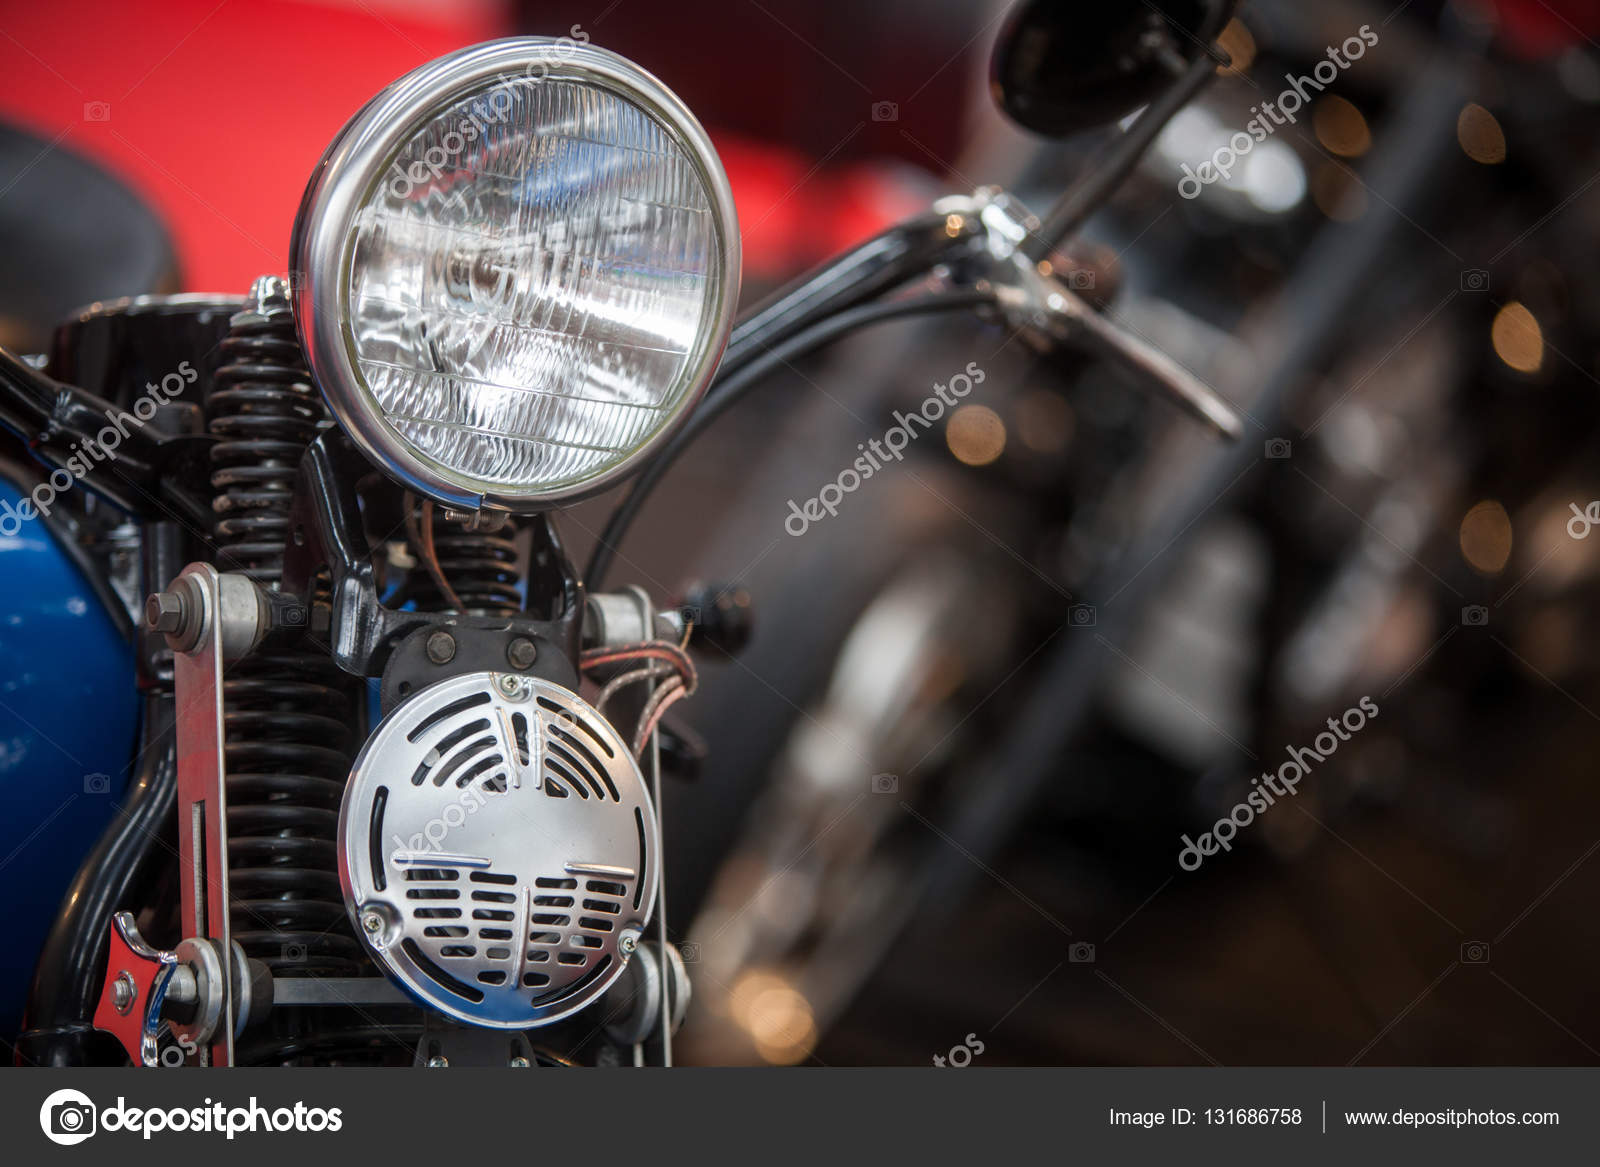 Vintage Motorcycle Headlight And Horn Stock Photo C Bizoon 131686758